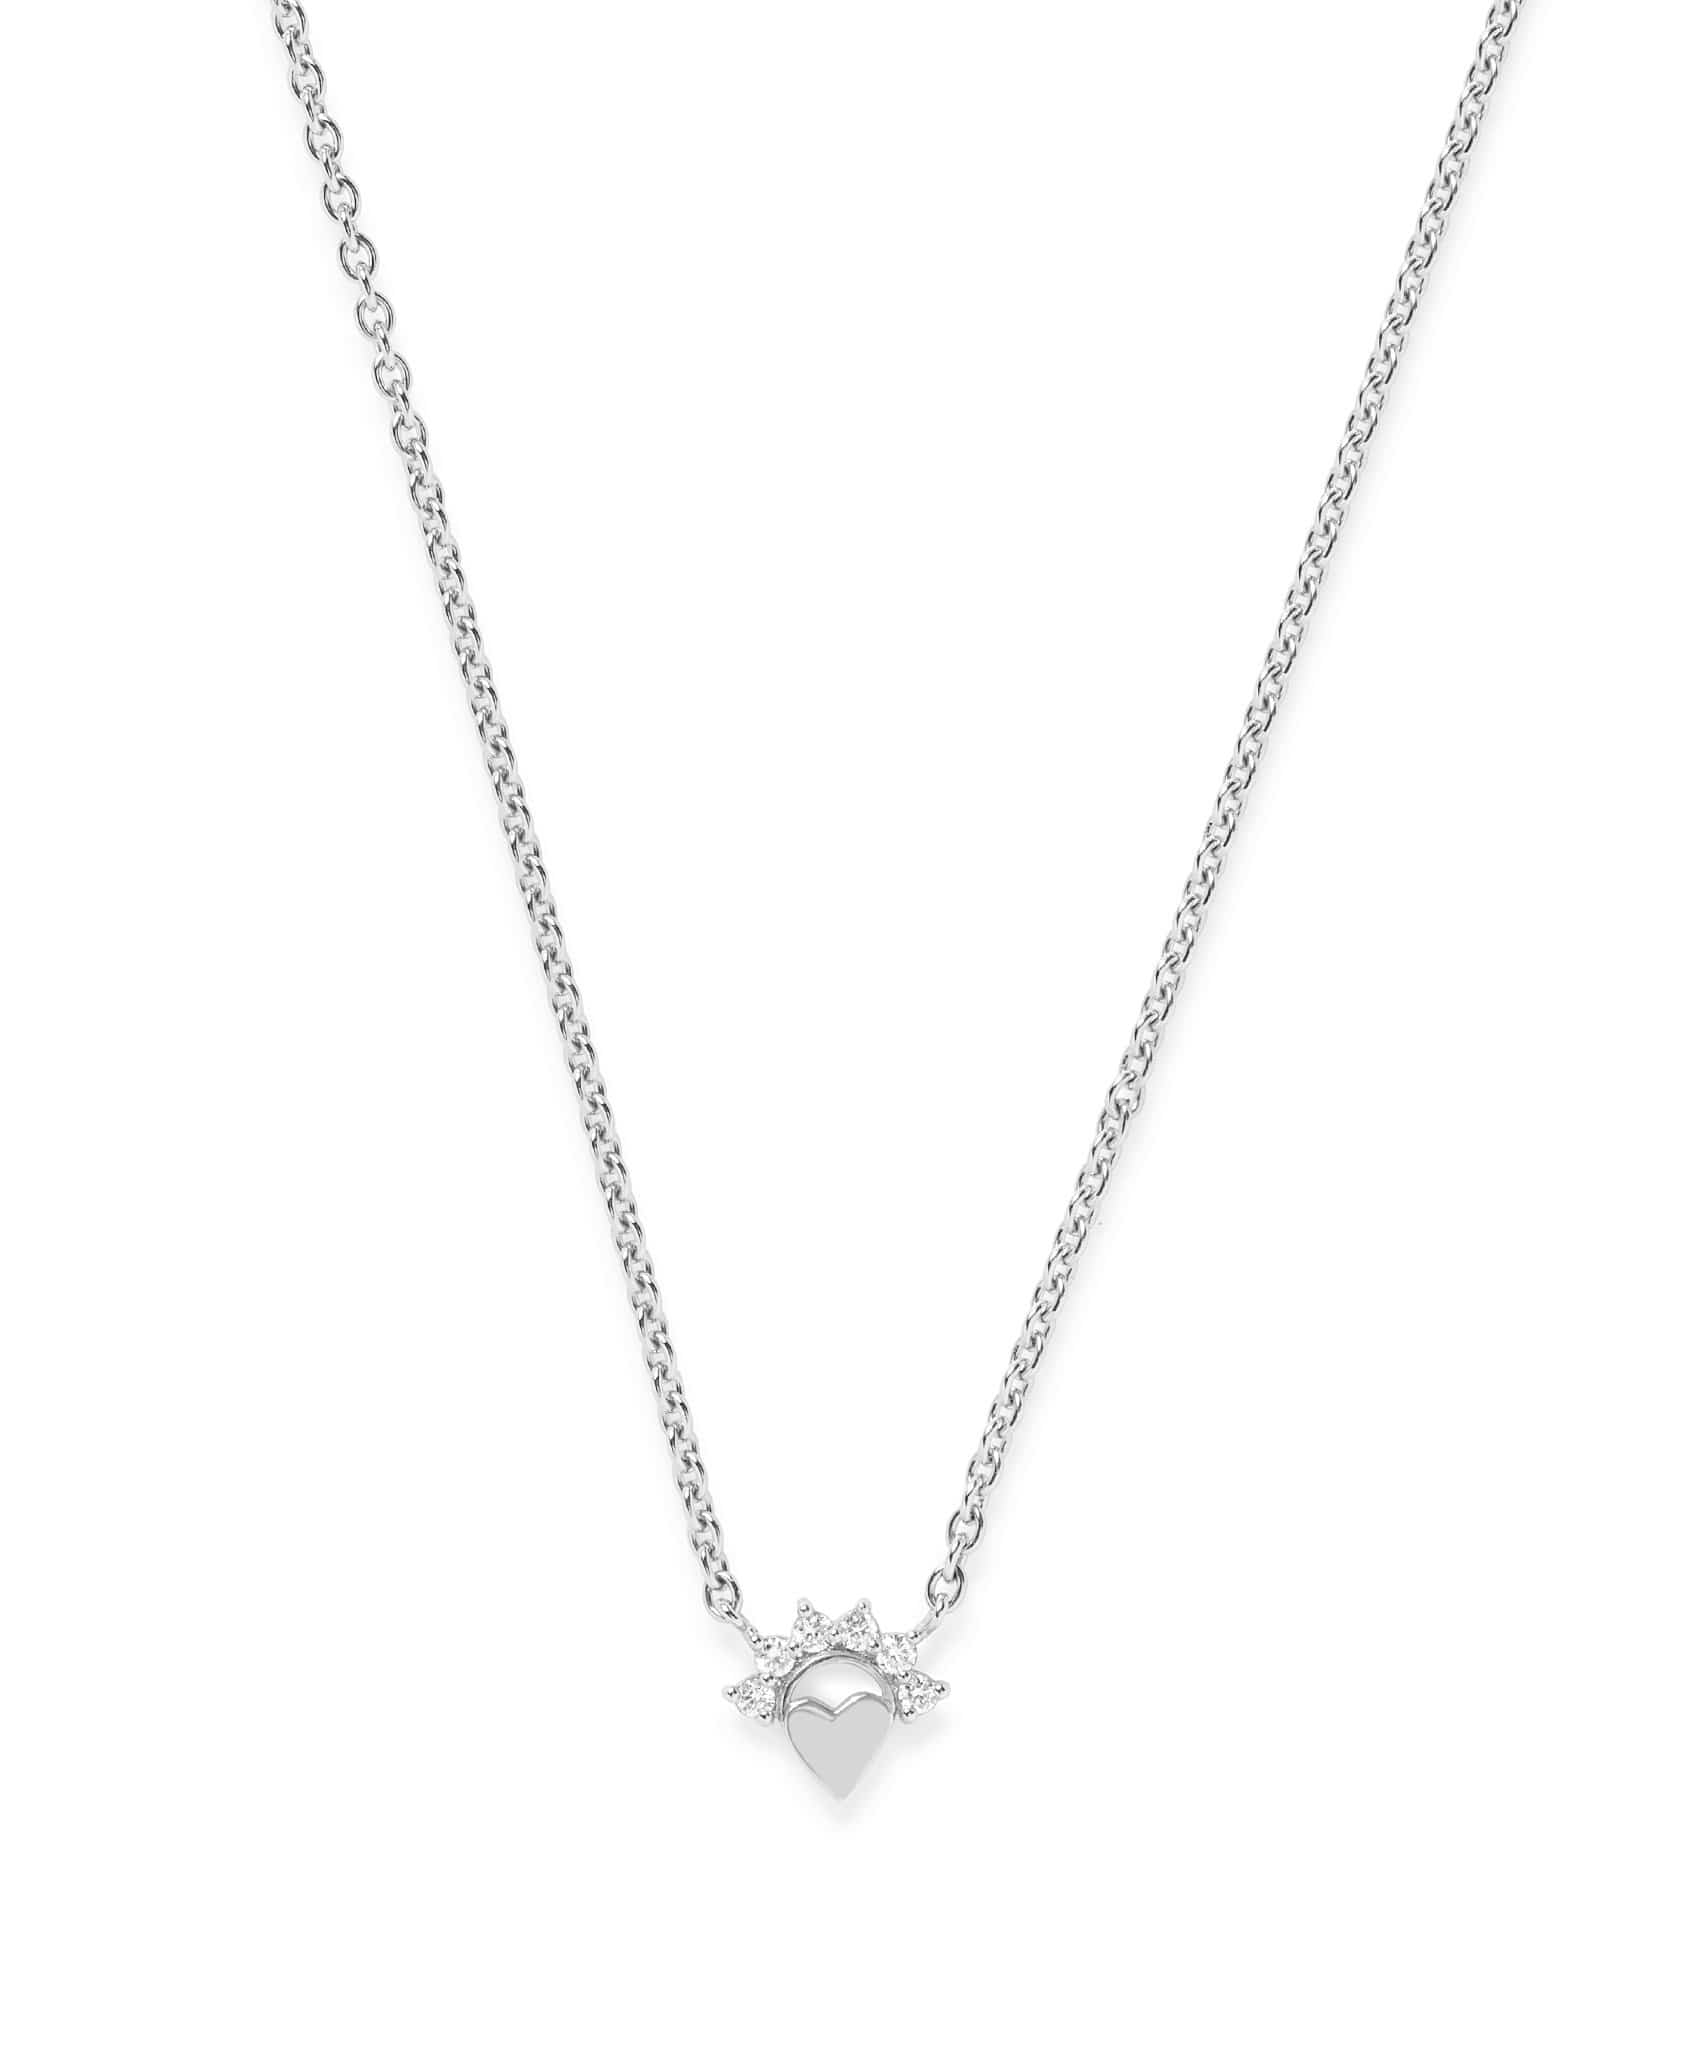 Small Love Pendant: Discover Luxury Fine Jewelry | Nouvel Heritage || White Gold